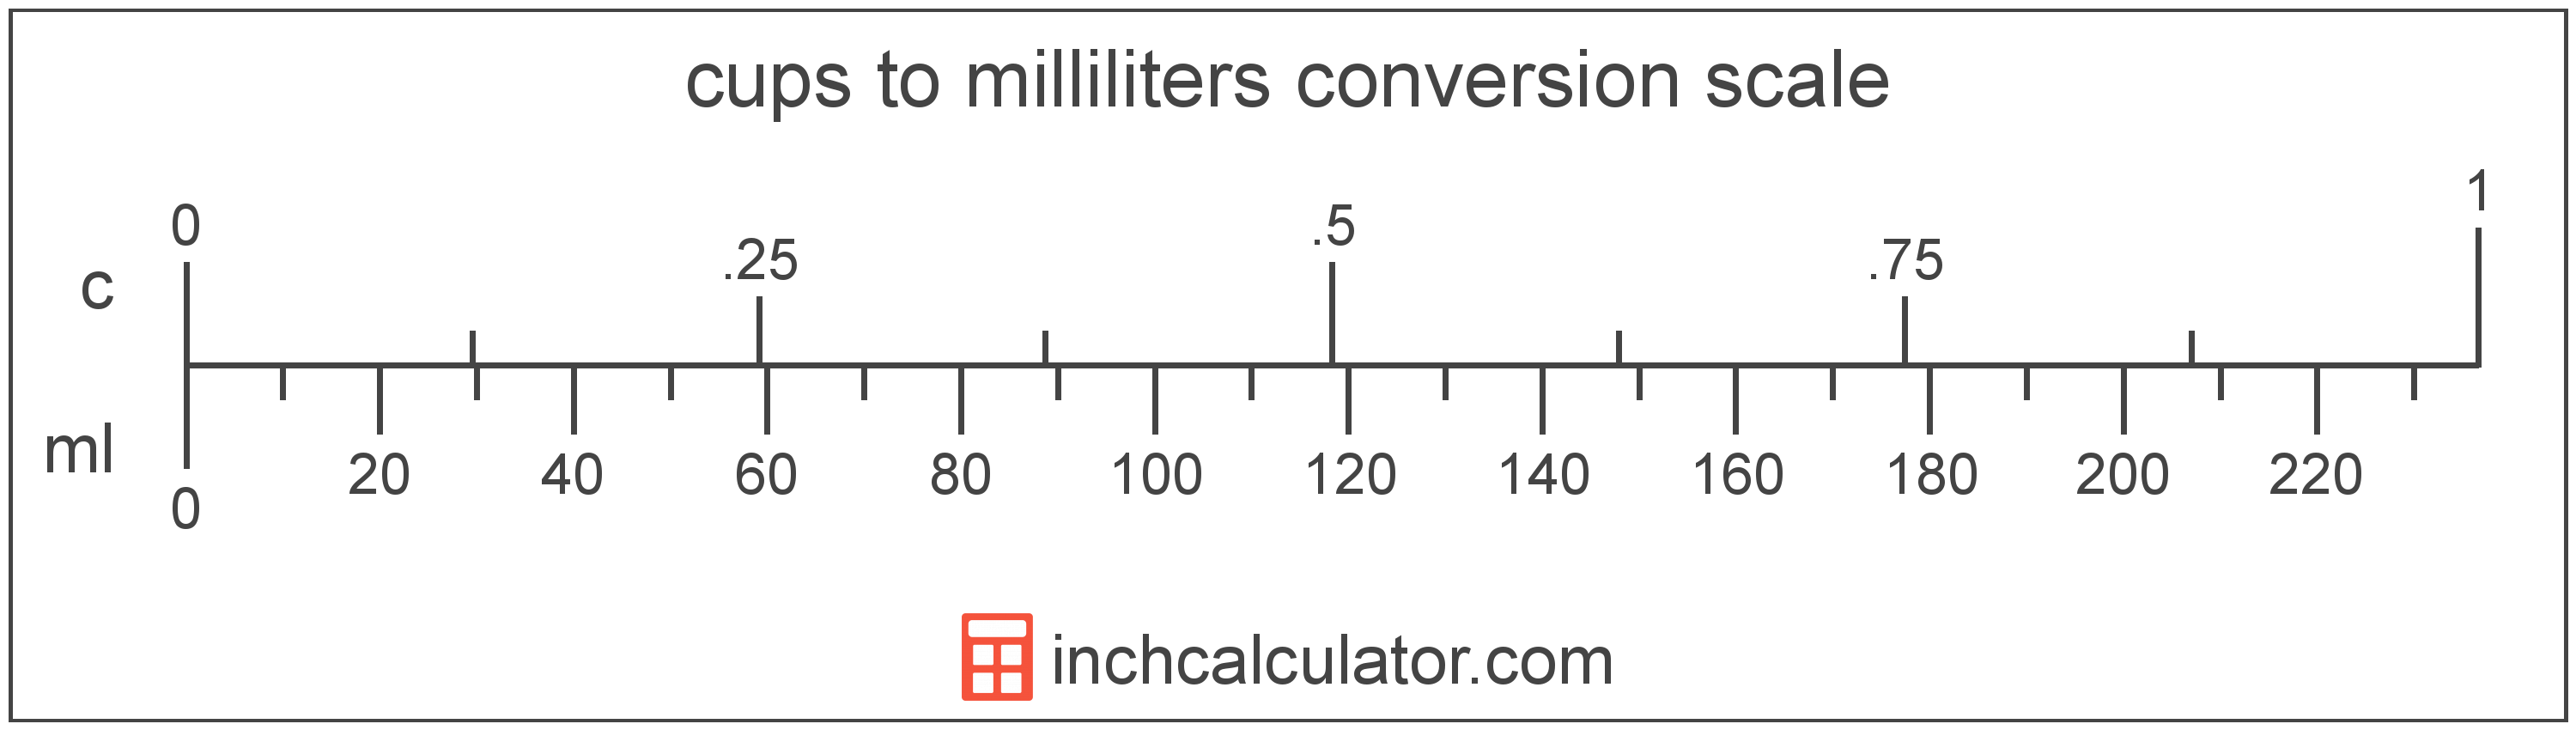 conversion scale showing milliliters and equivalent cups volume values